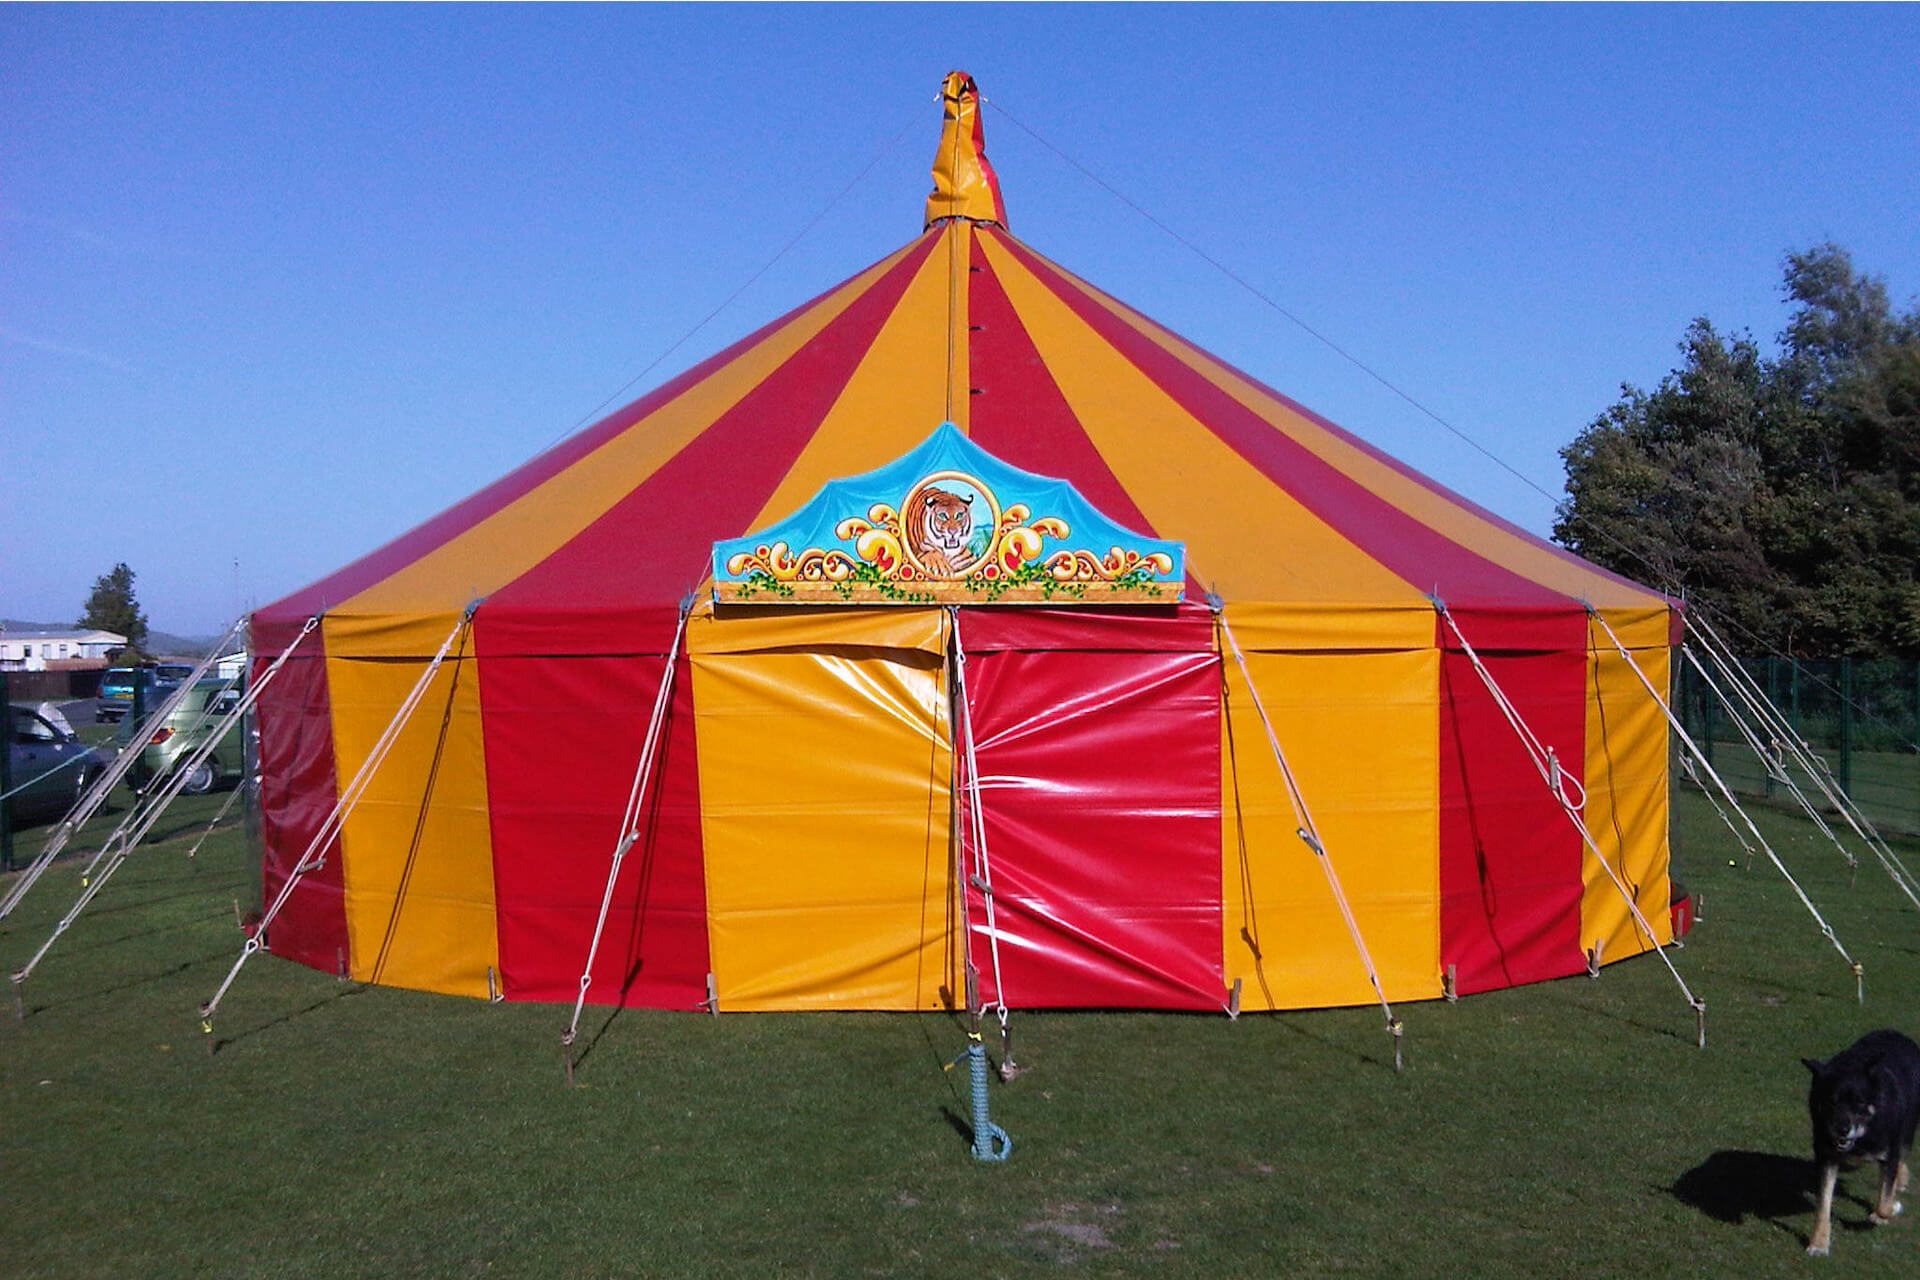 Dot is a lovely 11m round red and yellow small circus tent Bristol